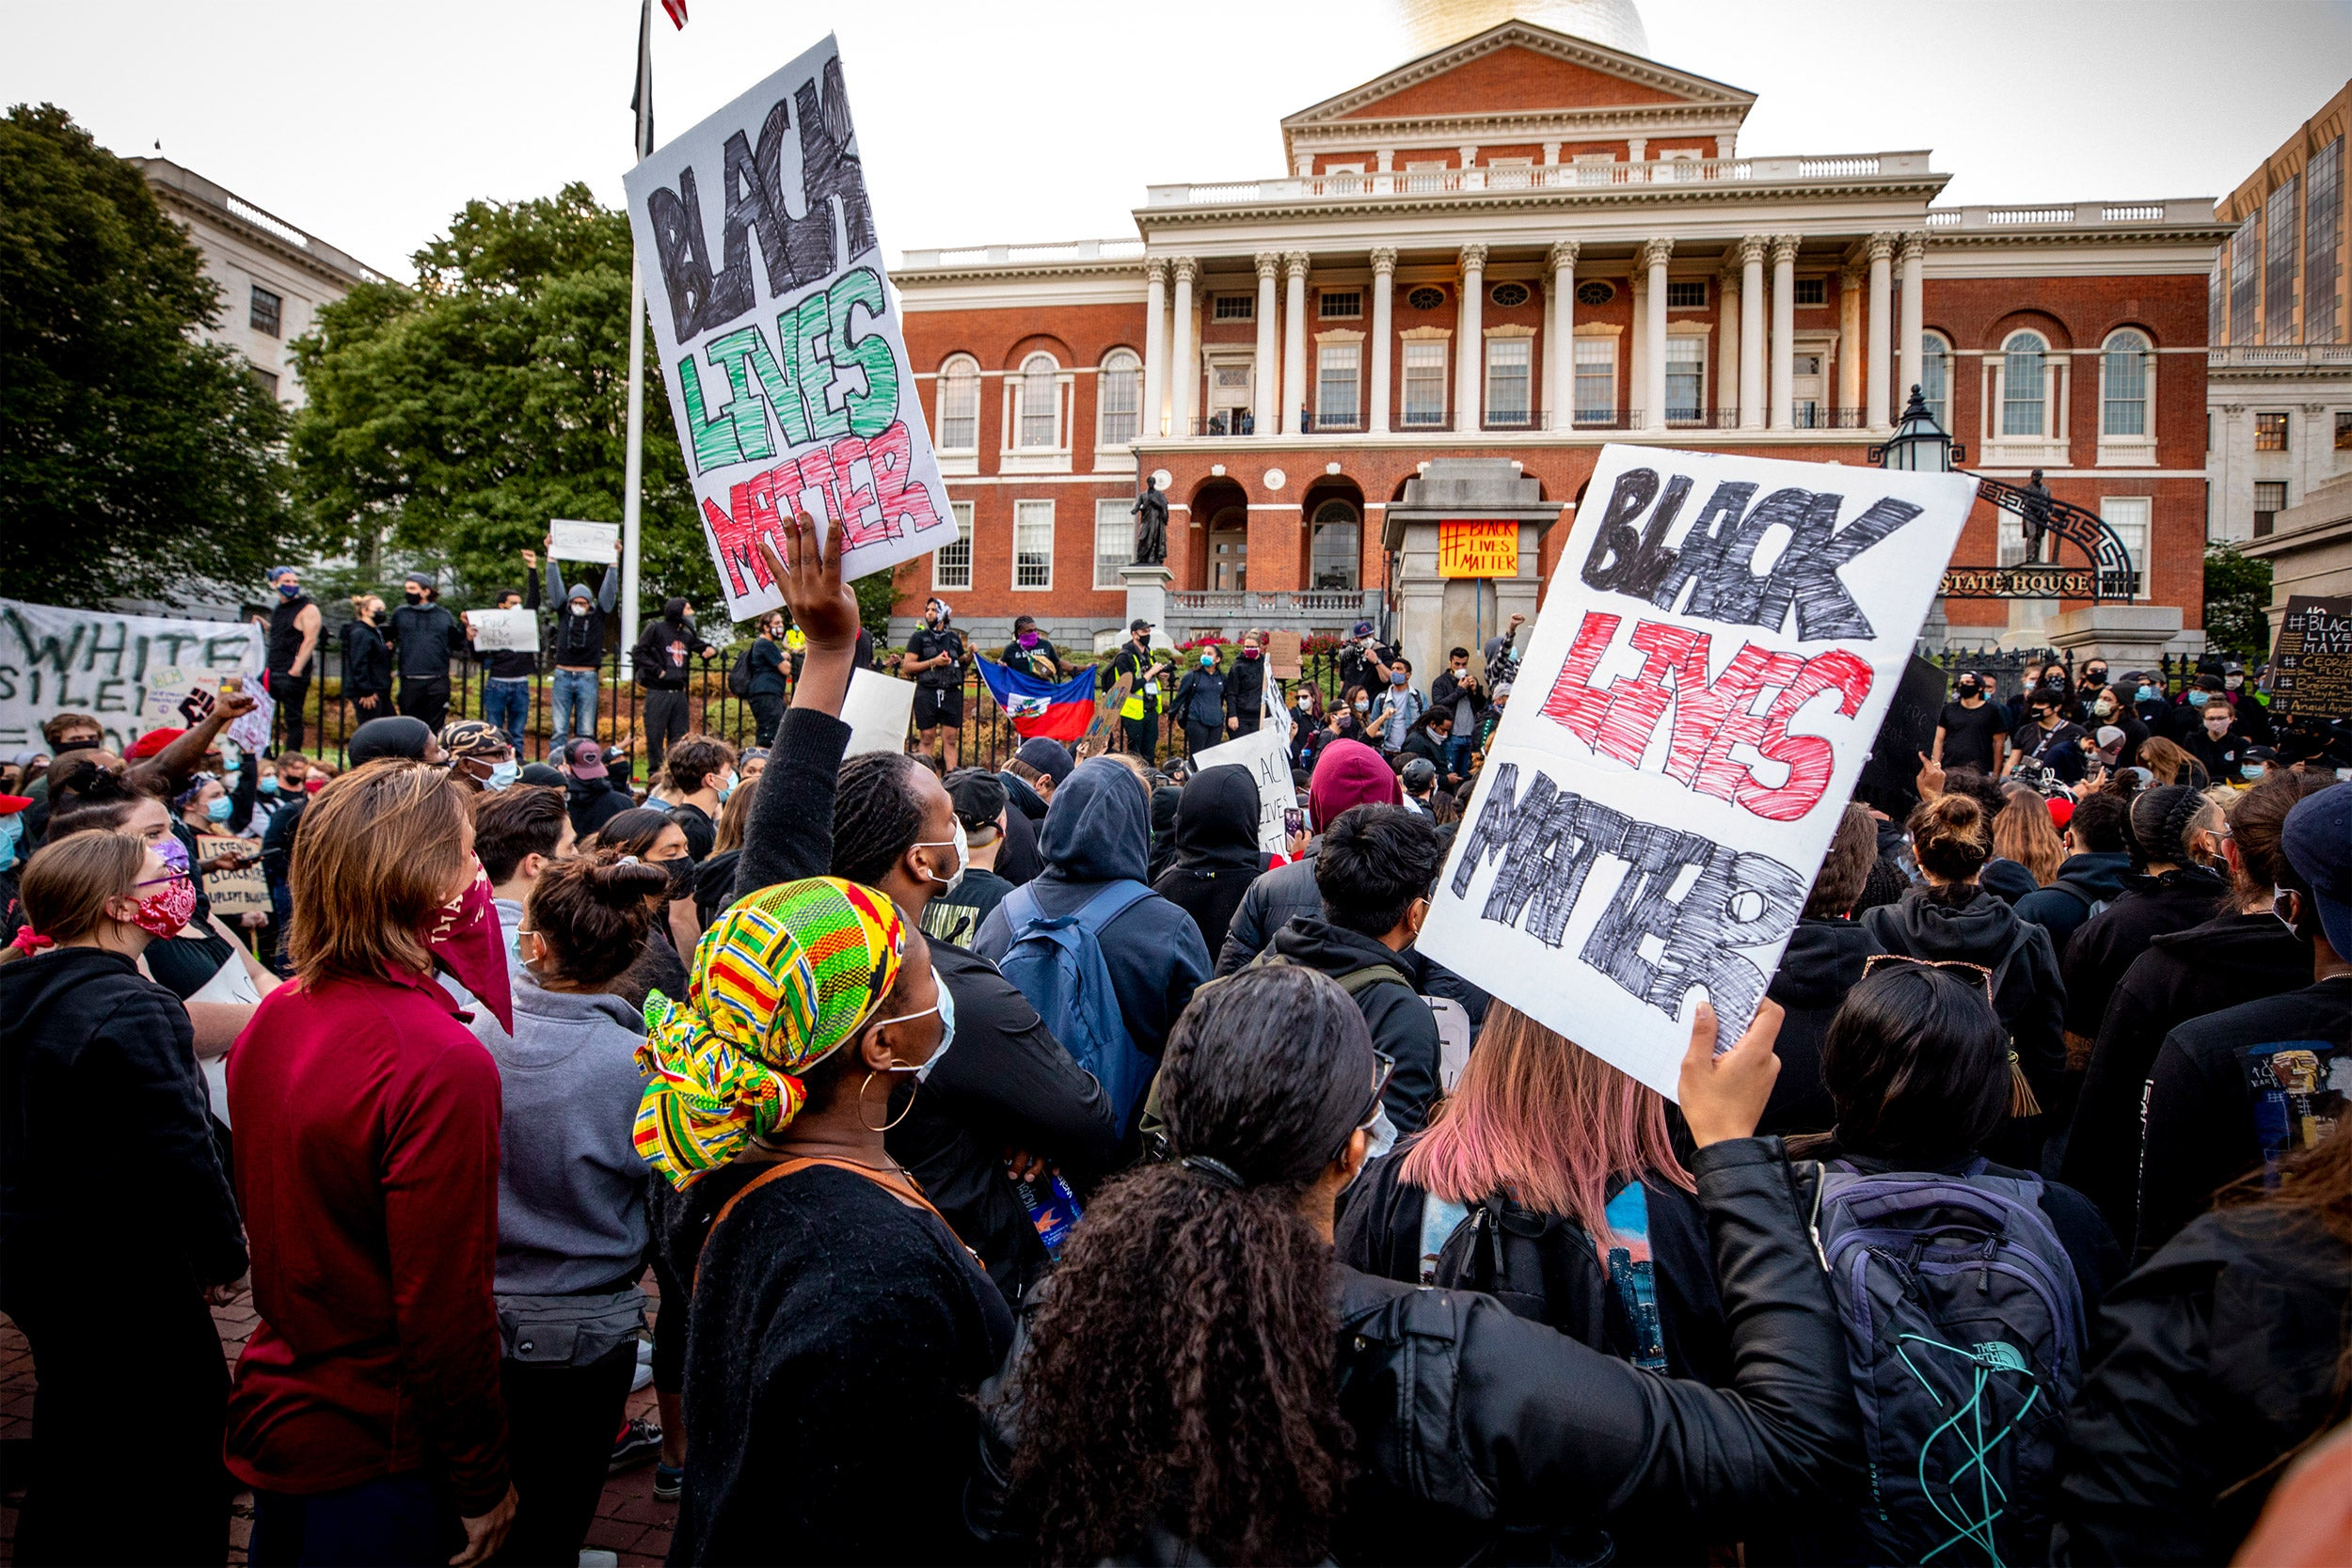 Protest at State House in Boston.